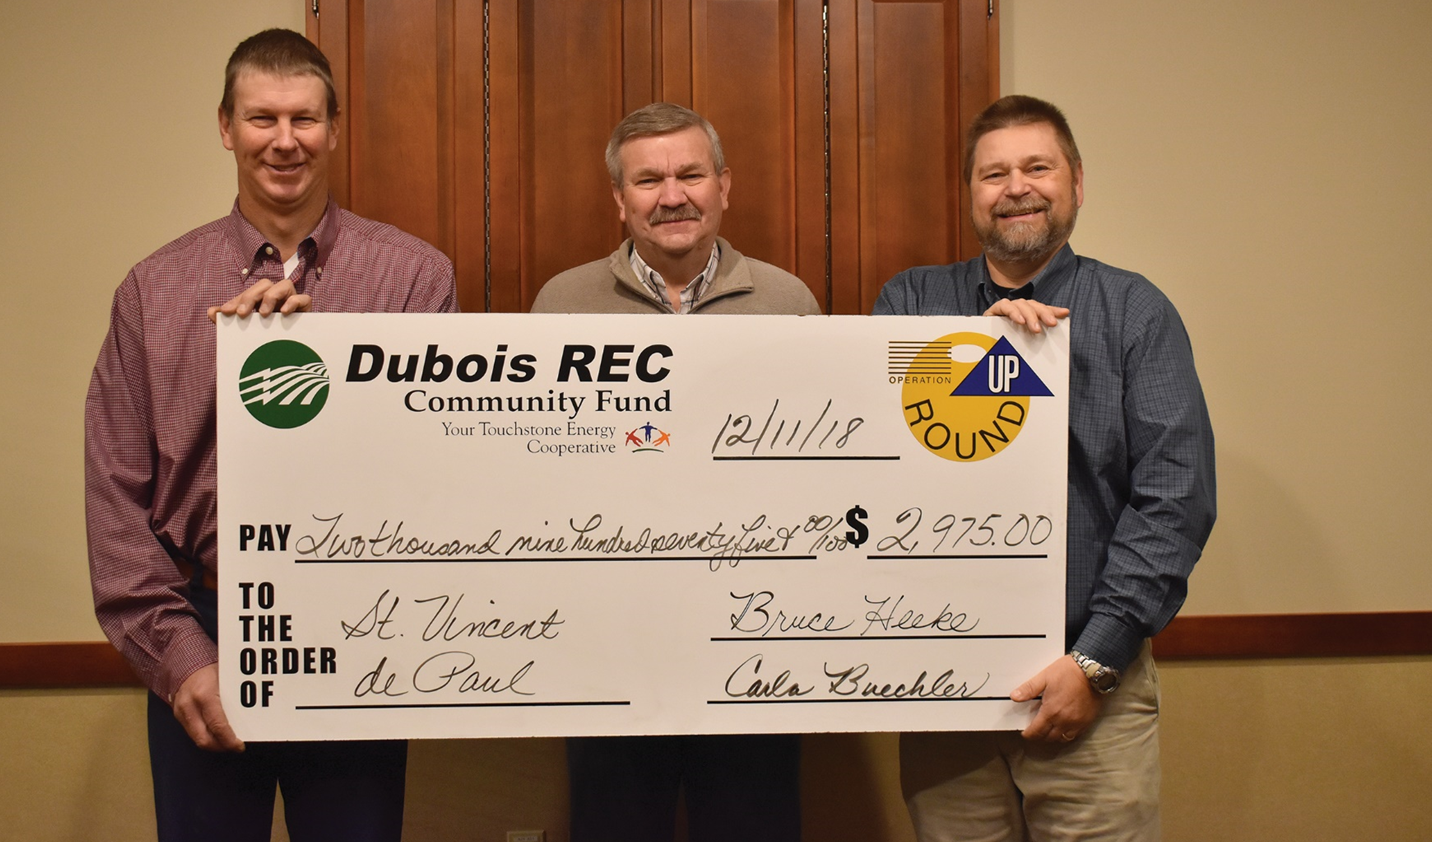 Dubois REC Fund Awards More Grants to Local Groups